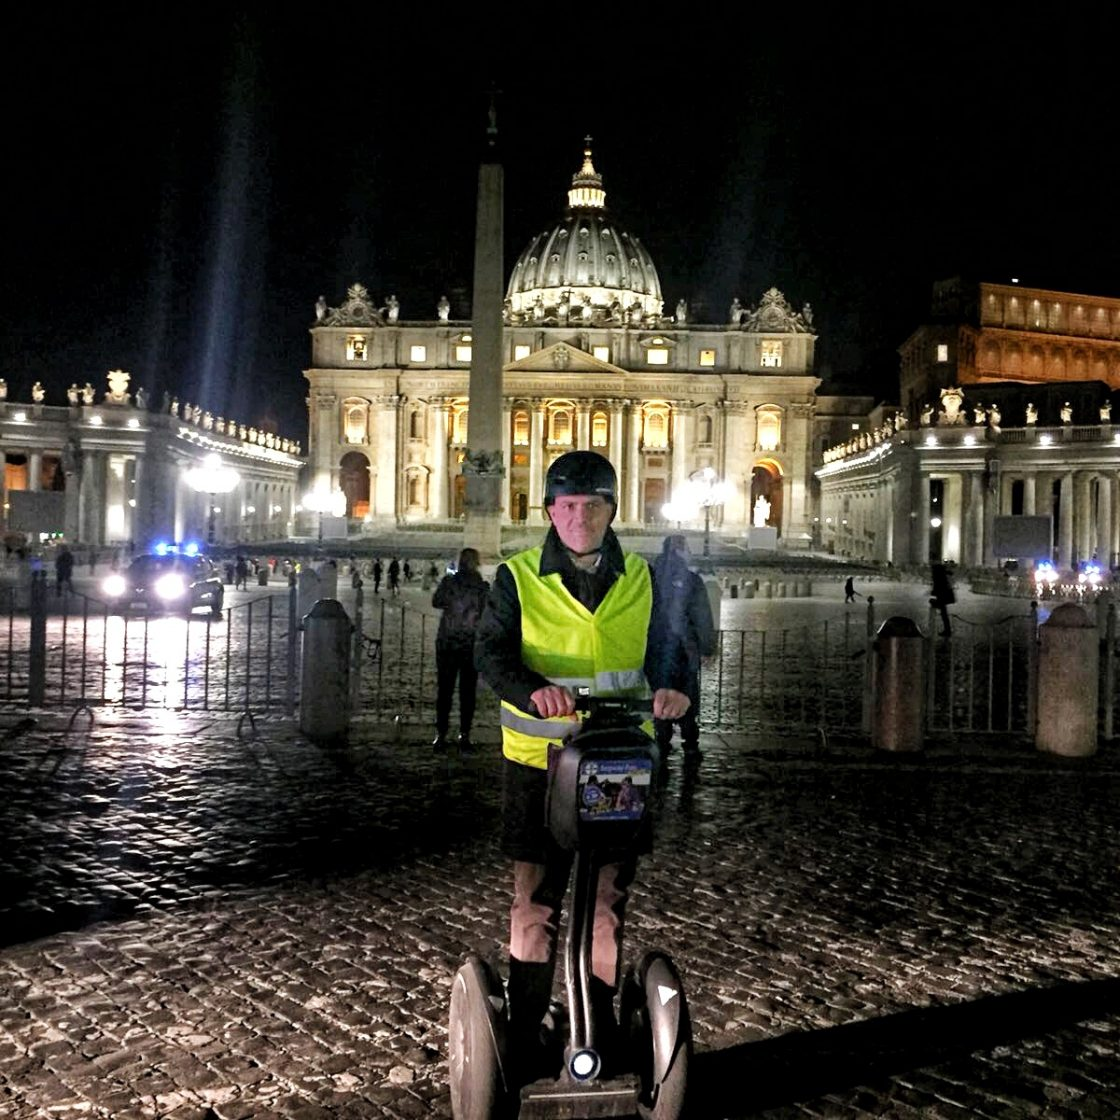 A man on segway with a reflective vest in front of Basilica of saint Peter in Rome at Night